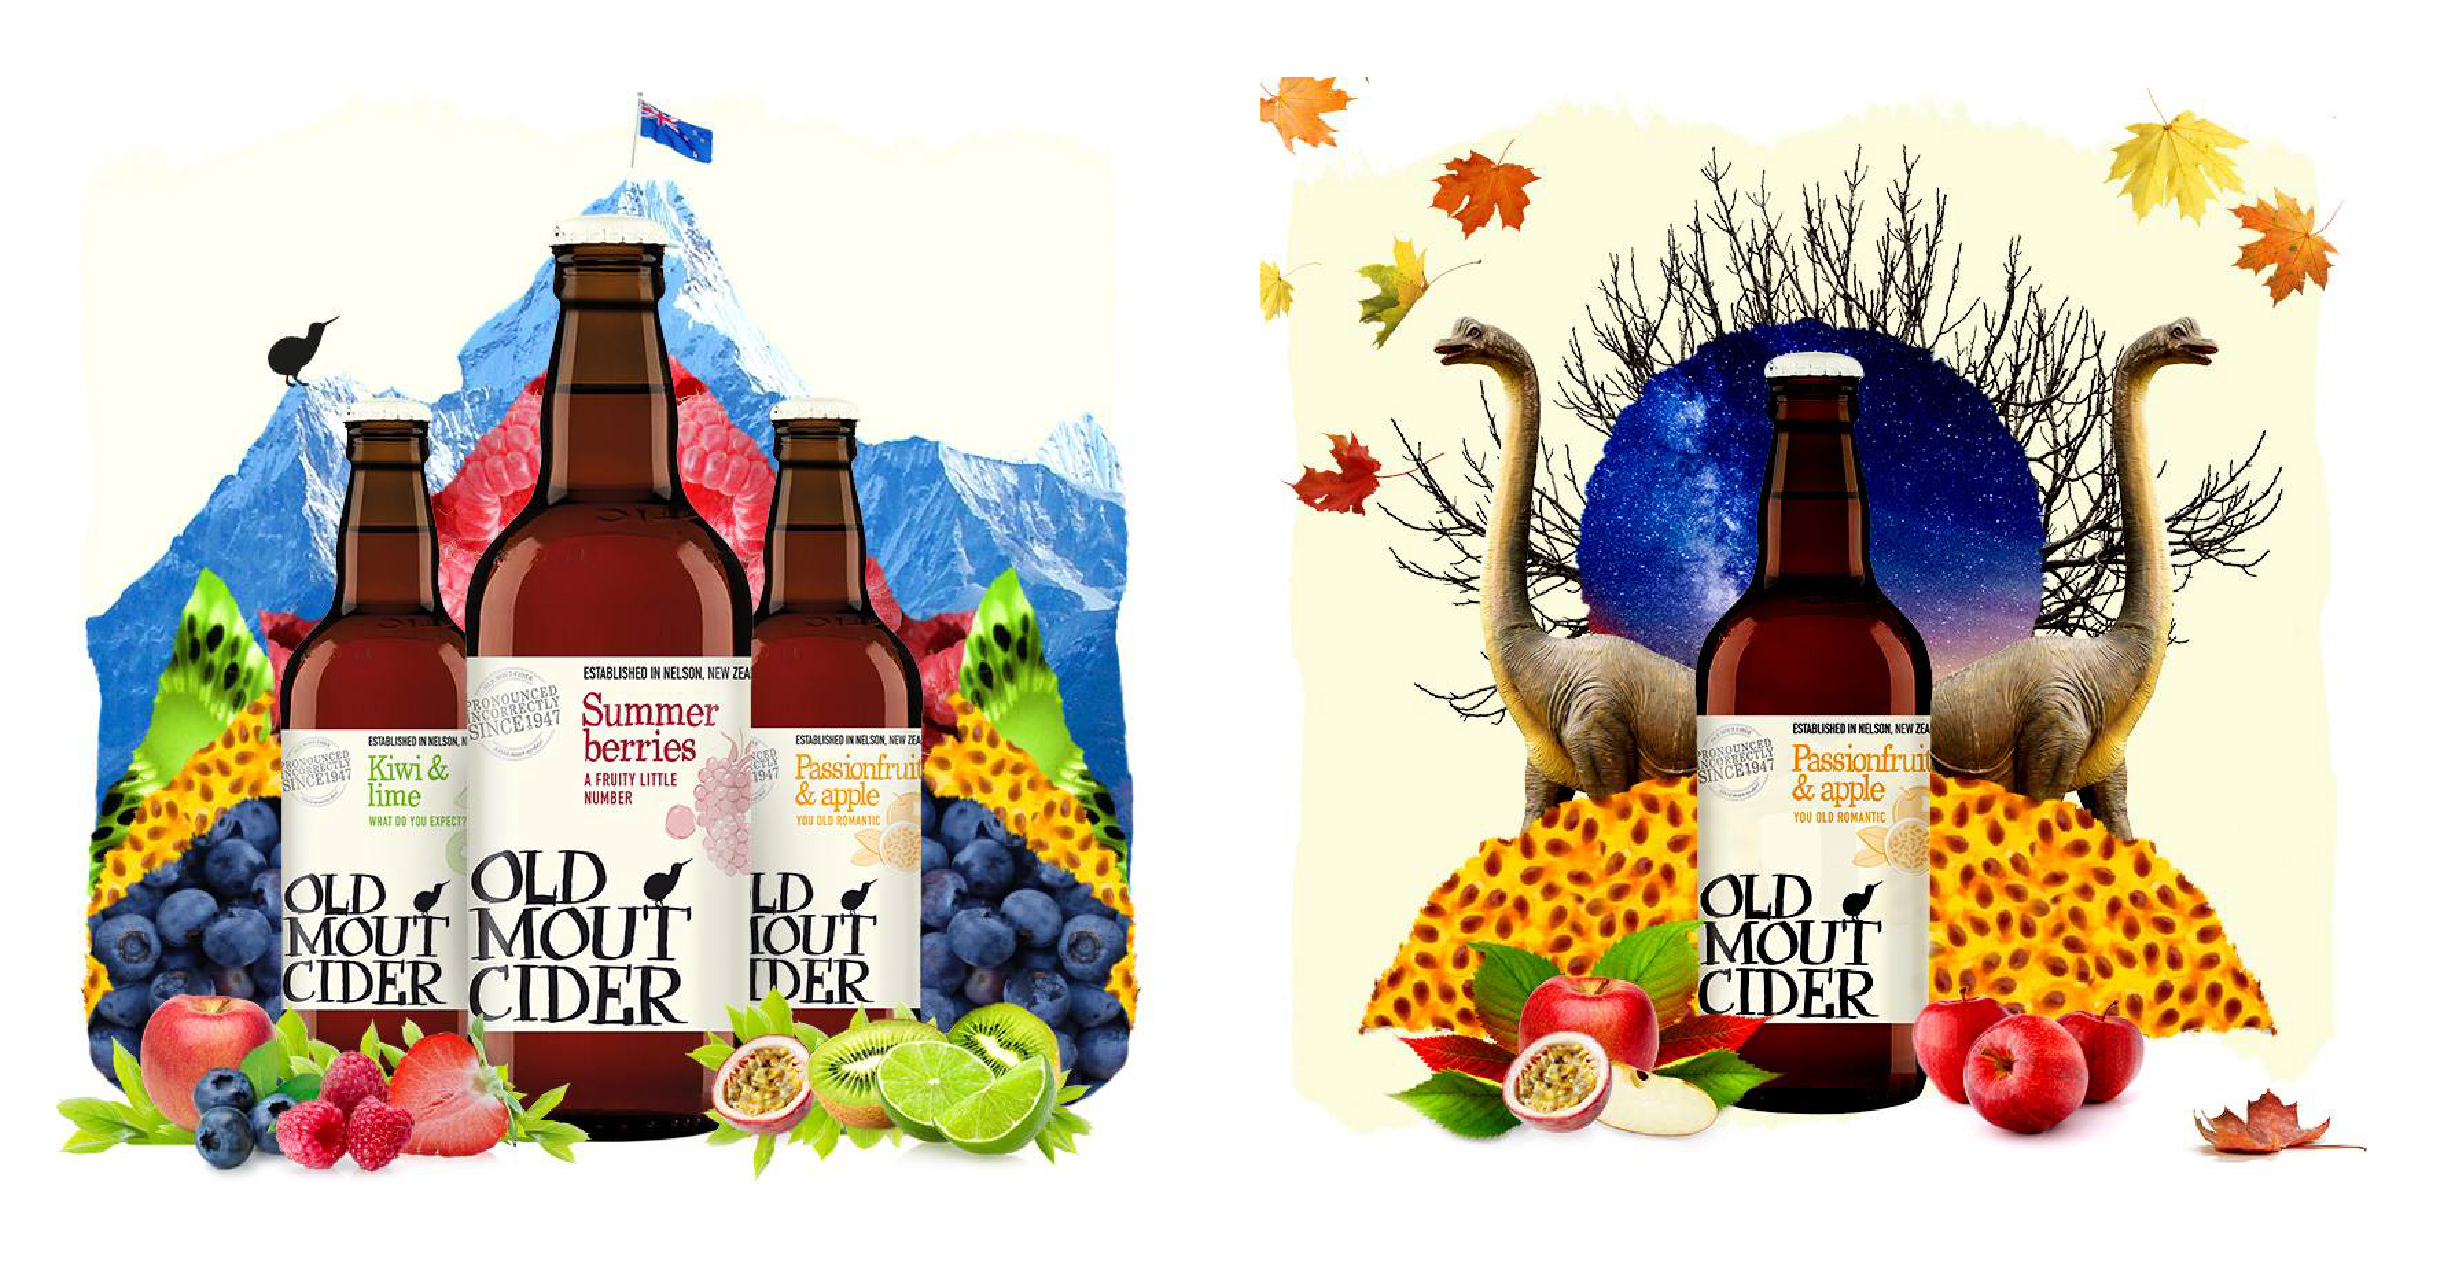 Social media collages for Old Mout Cider launch - Everest and dinosaurs